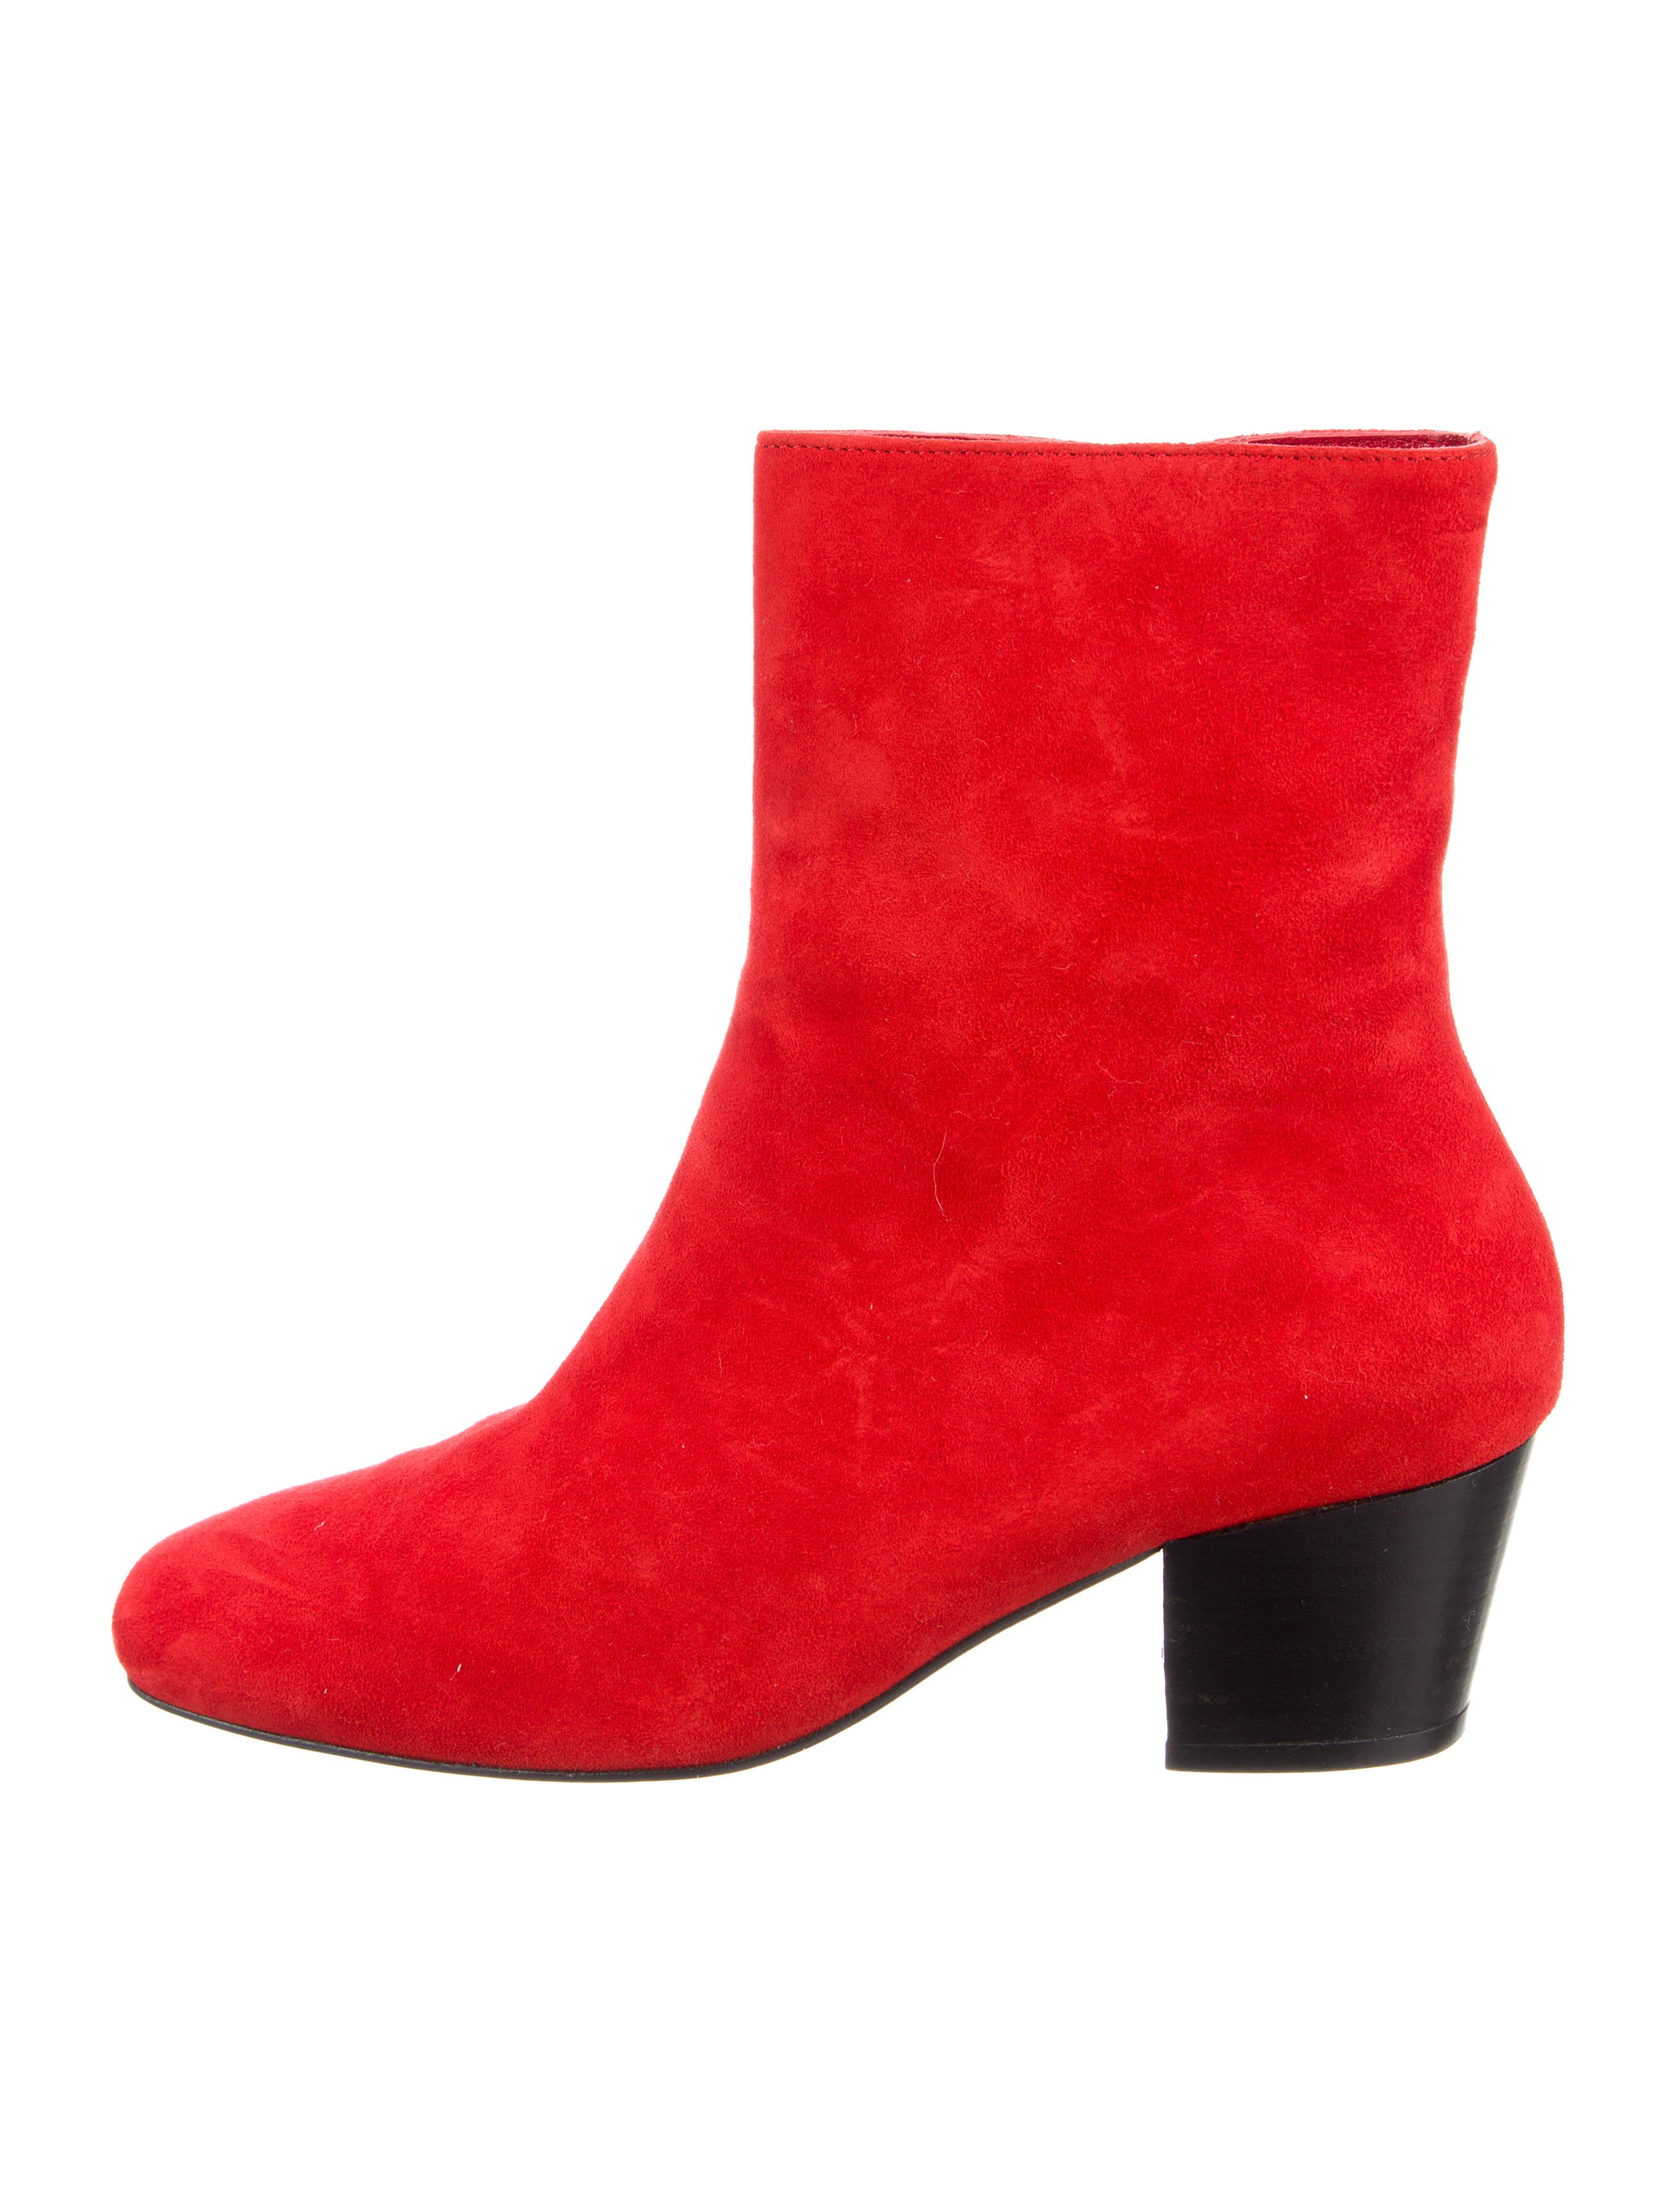 Dorateymur Droop Nose Suede Ankle Boots w/ Tags sale footaction discount 2014 outlet wide range of discount best RlCYDlD